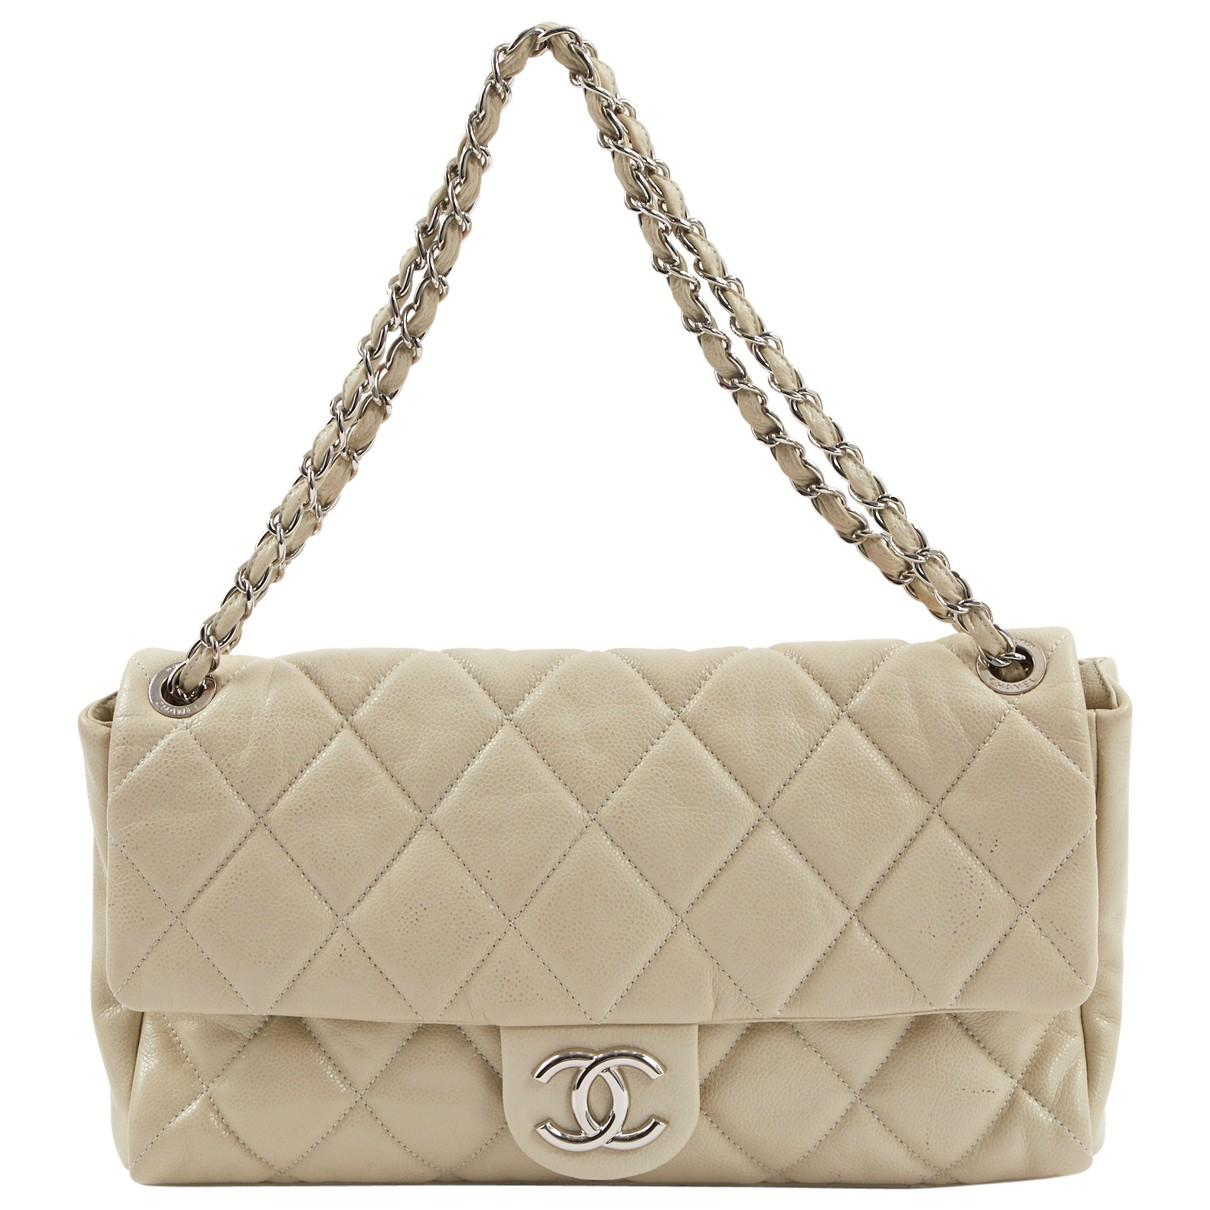 3bbb8d4375f9 Lyst - Chanel Timeless Leather Handbag